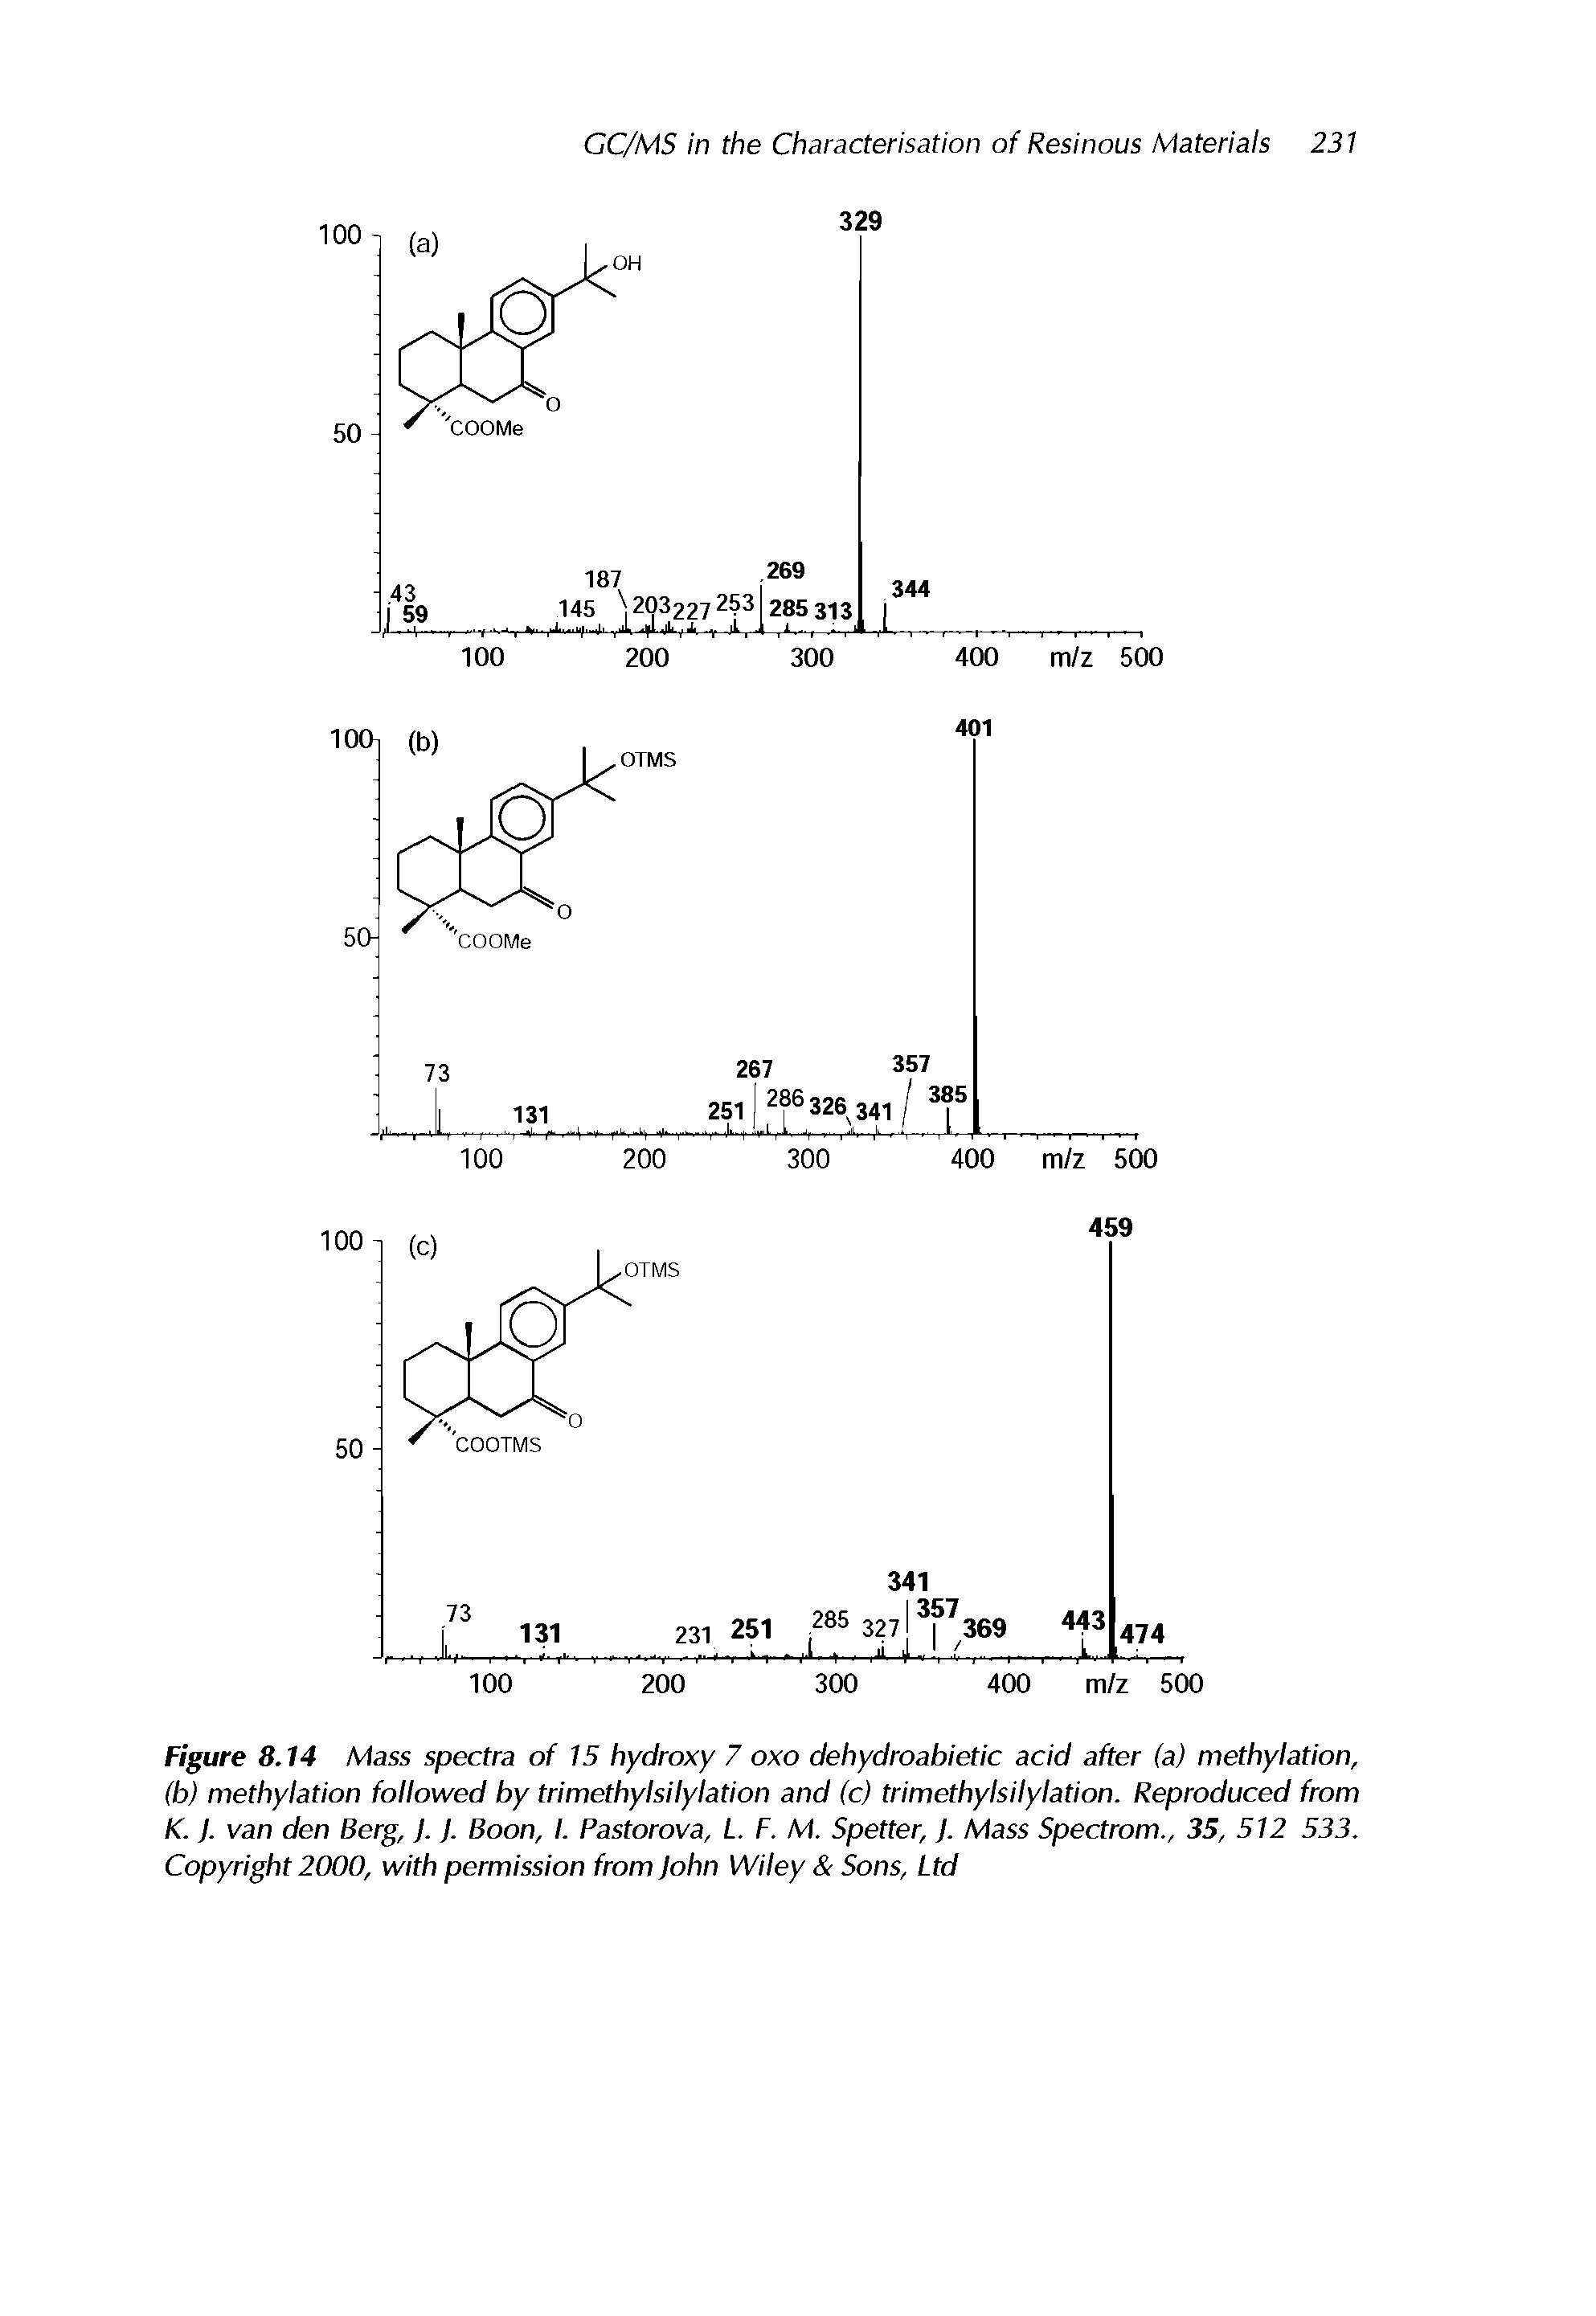 Figure 8.14 Mass spectra of 15 hydroxy 7 oxo dehydroabietic acid after (a) methylation, (b) methylation followed by trimcthylsilylation and (c) trimcthylsilylation. Reproduced from K. J. van den Berg, J. J. Boon, I. Pastorova, L. F. M. Spetter, J. Mass Spectrom., 35, 512 533. Copyright 2000, with permission from John Wiley Sons, Ltd...